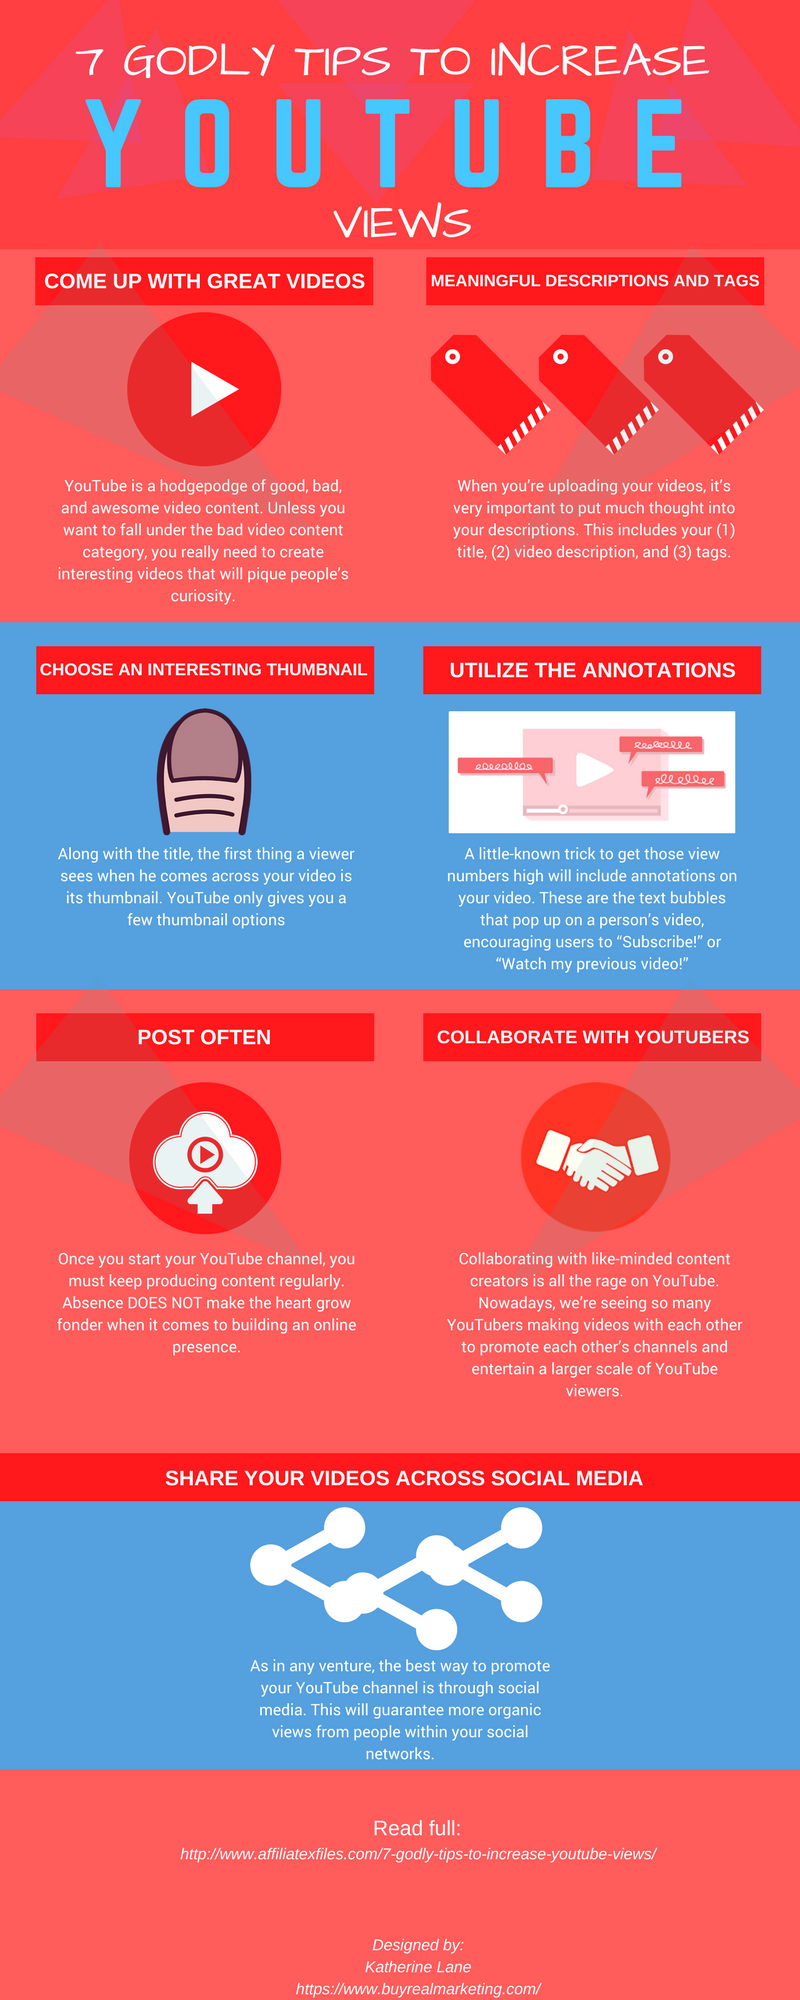 7 Godly Tips to Increase YouTube Views | Infographic Post